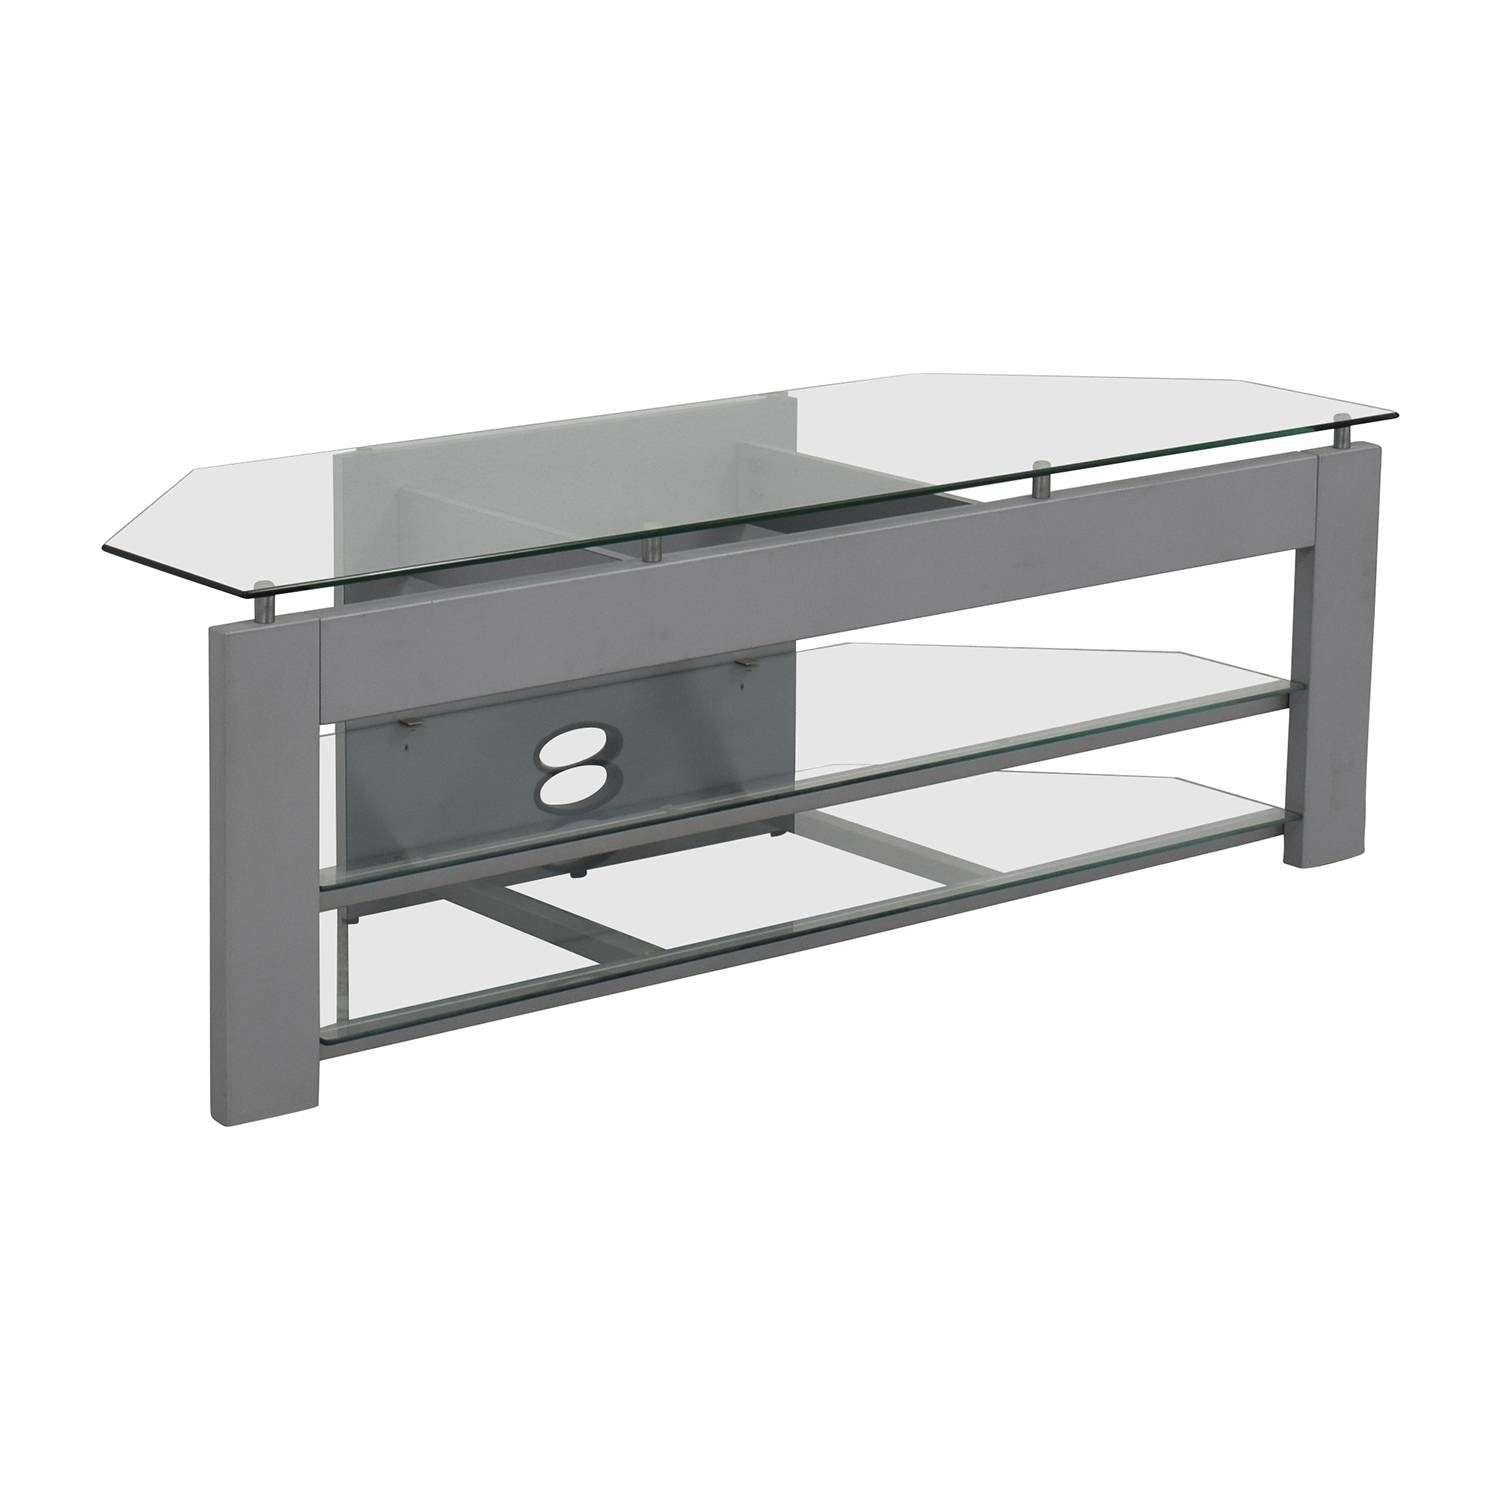 73% Off – Silver And Glass Tv Stand / Storage Inside Silver Tv Stands (View 3 of 15)